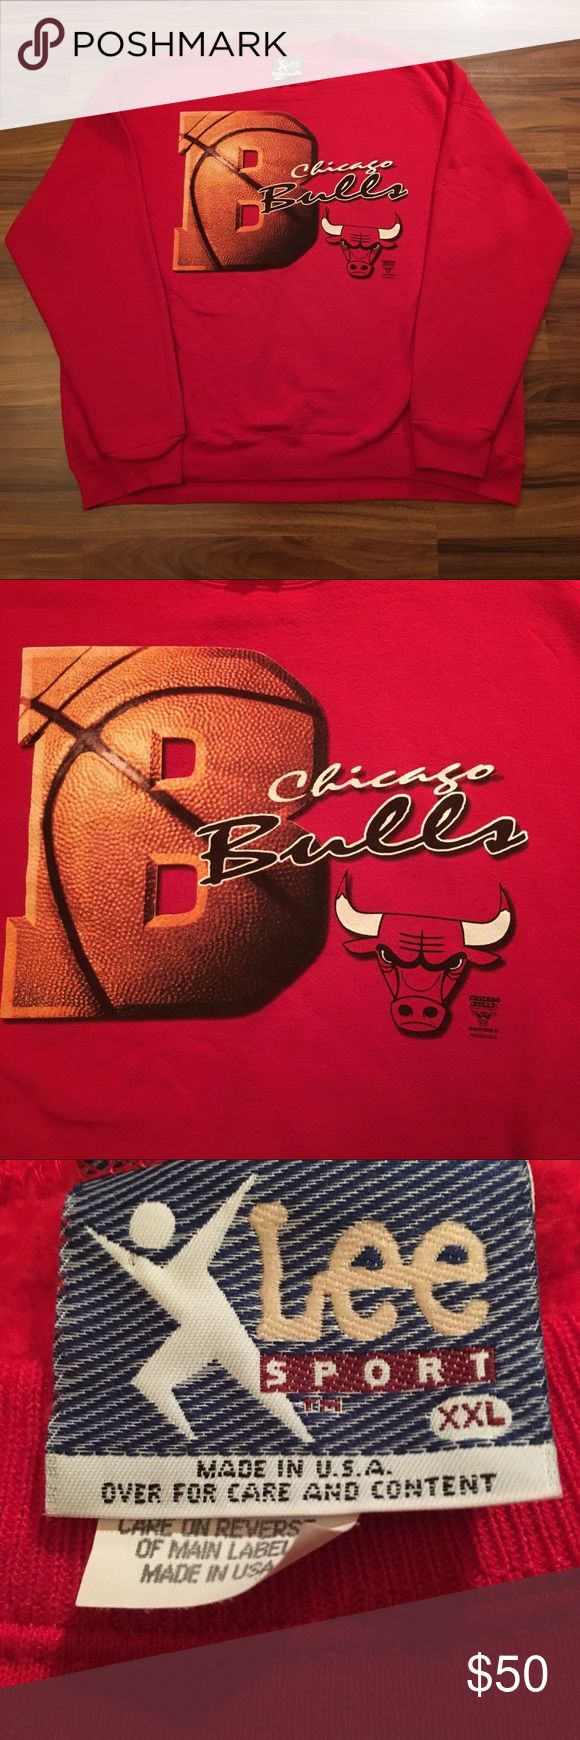 Vintage Chicago Bulls NBA Sweater - Men's XXL Preowned: Vintage & Rare Lee Sports Chicago Bulls NBA Sweater - Men's XXL  • Condition - 9/10! This vintage Lee Sport Chicago Bulls Sweater is in great condition especially considering it's age. No rips, holes or stains • Brand - Lee Sports • Size - Men's XXL • Color - Red • Team - Chicago Bulls  • Association - NBA • Origin - Made in USA Lee Sports Sweaters